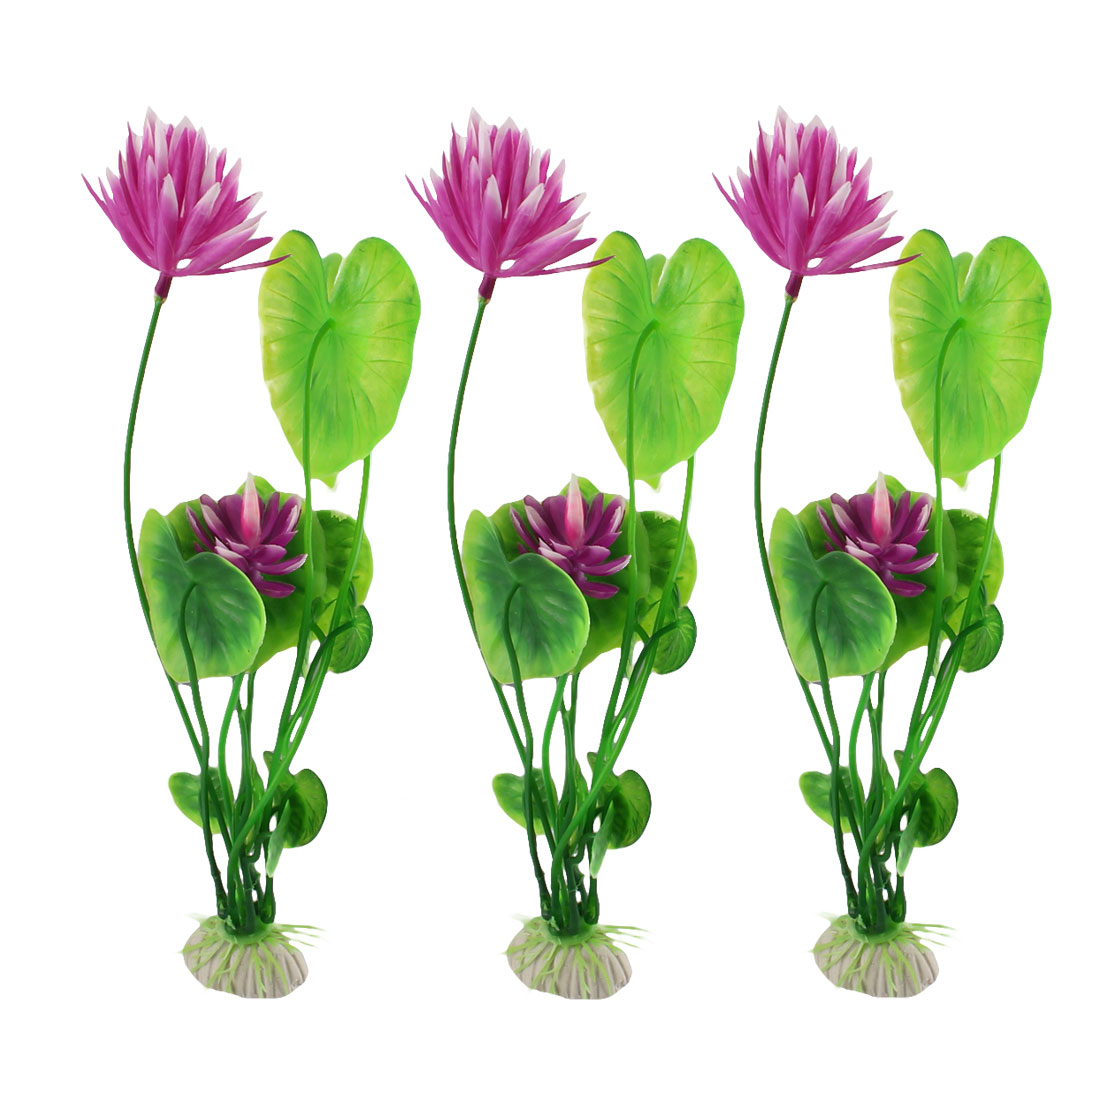 Underwater Fish Tank Aquarium Plastic Artificial Lotus Plant Ornament Decoration 3pcs